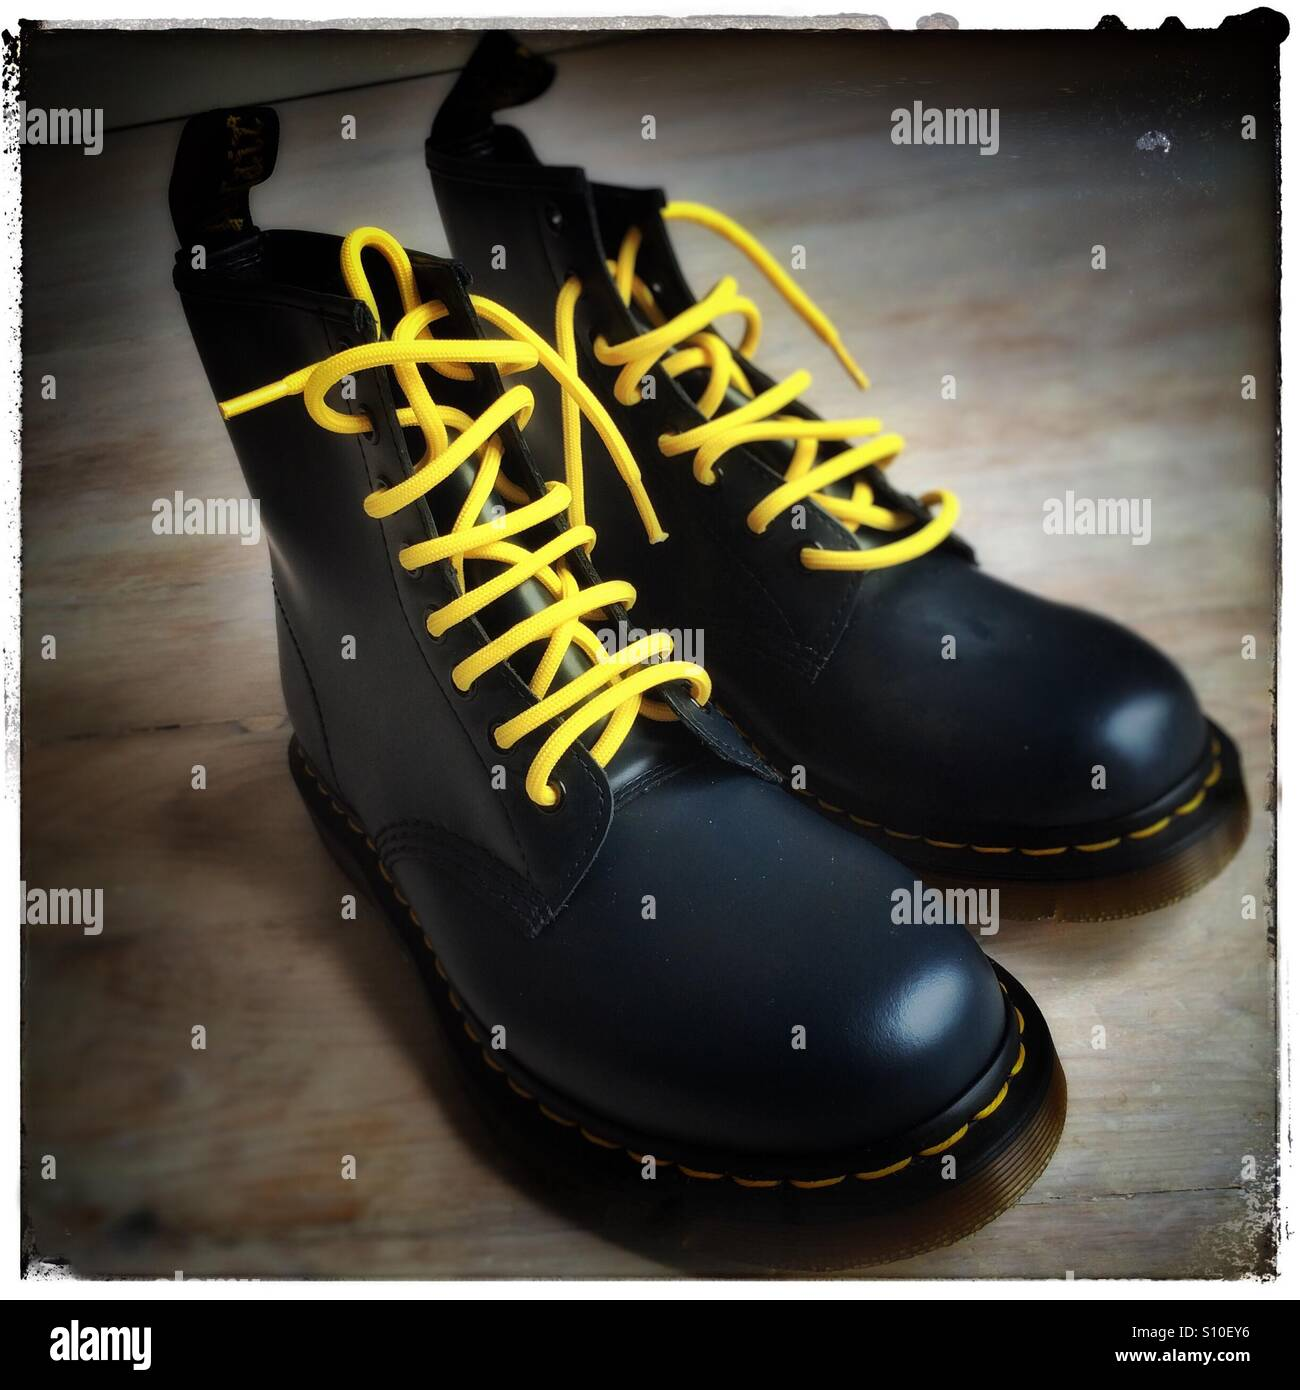 Dr Martens classic style boots in blue leather with yellow